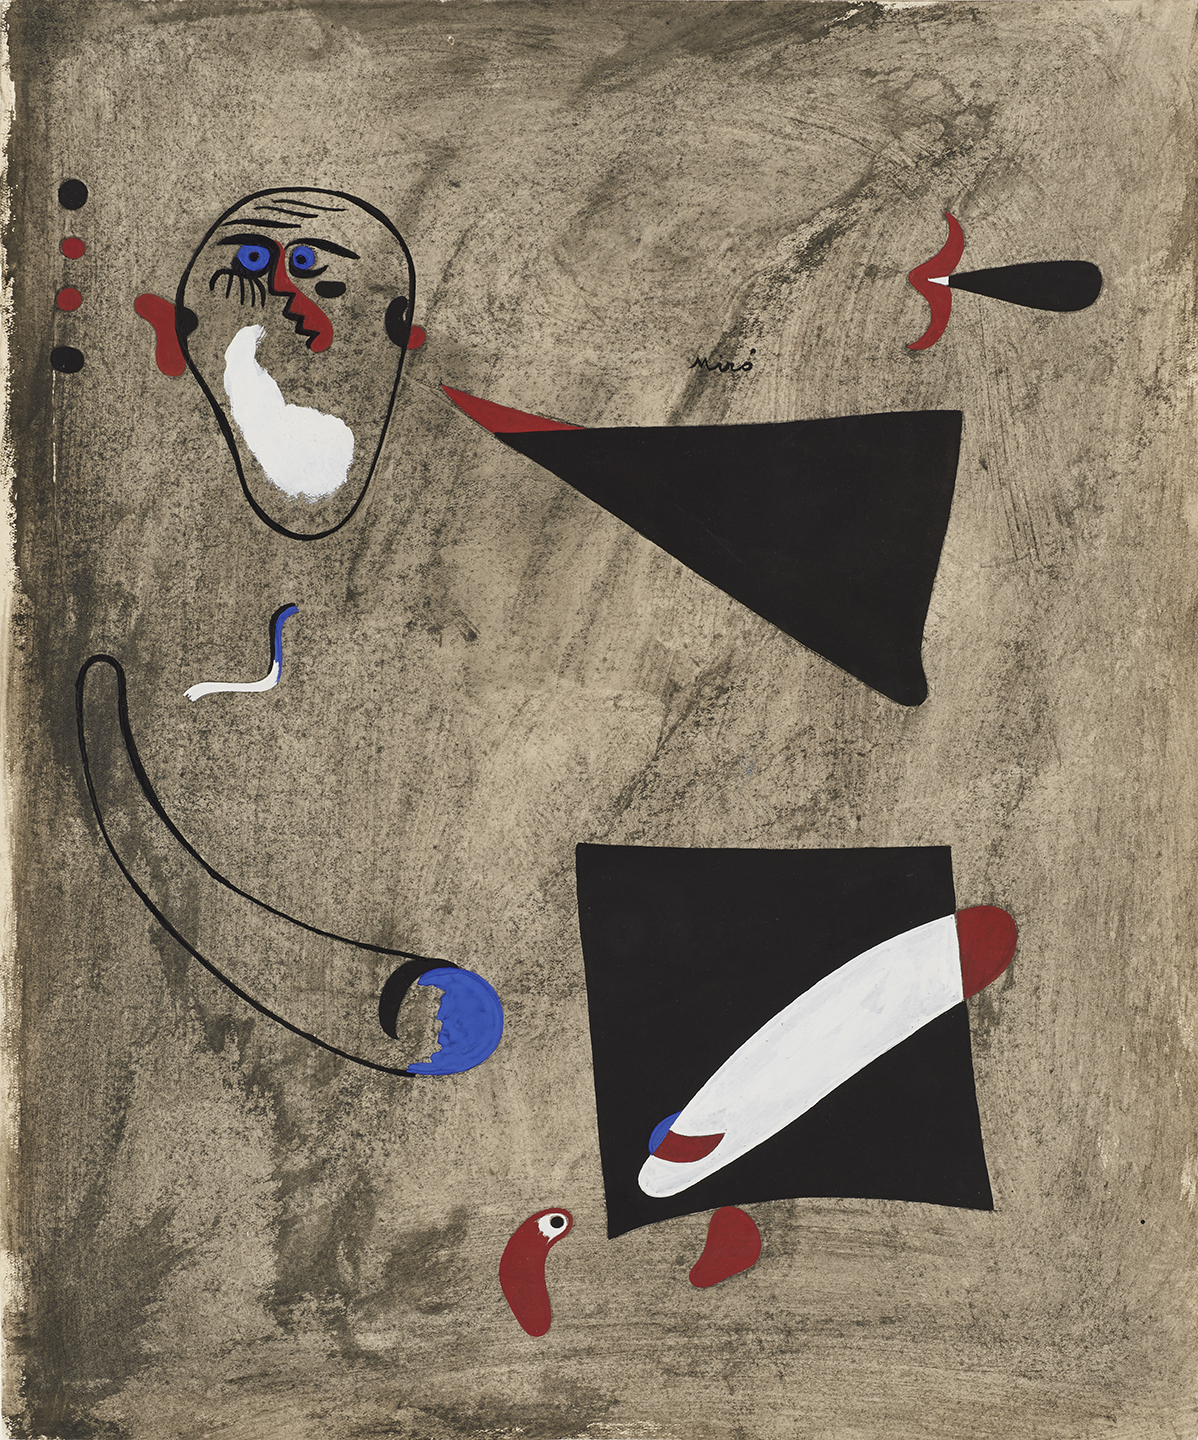 Head of Man and Object Discovering (Im)perfections in Artwork: Joan Miró. Art Lesson Plan (Denver Art Museum)